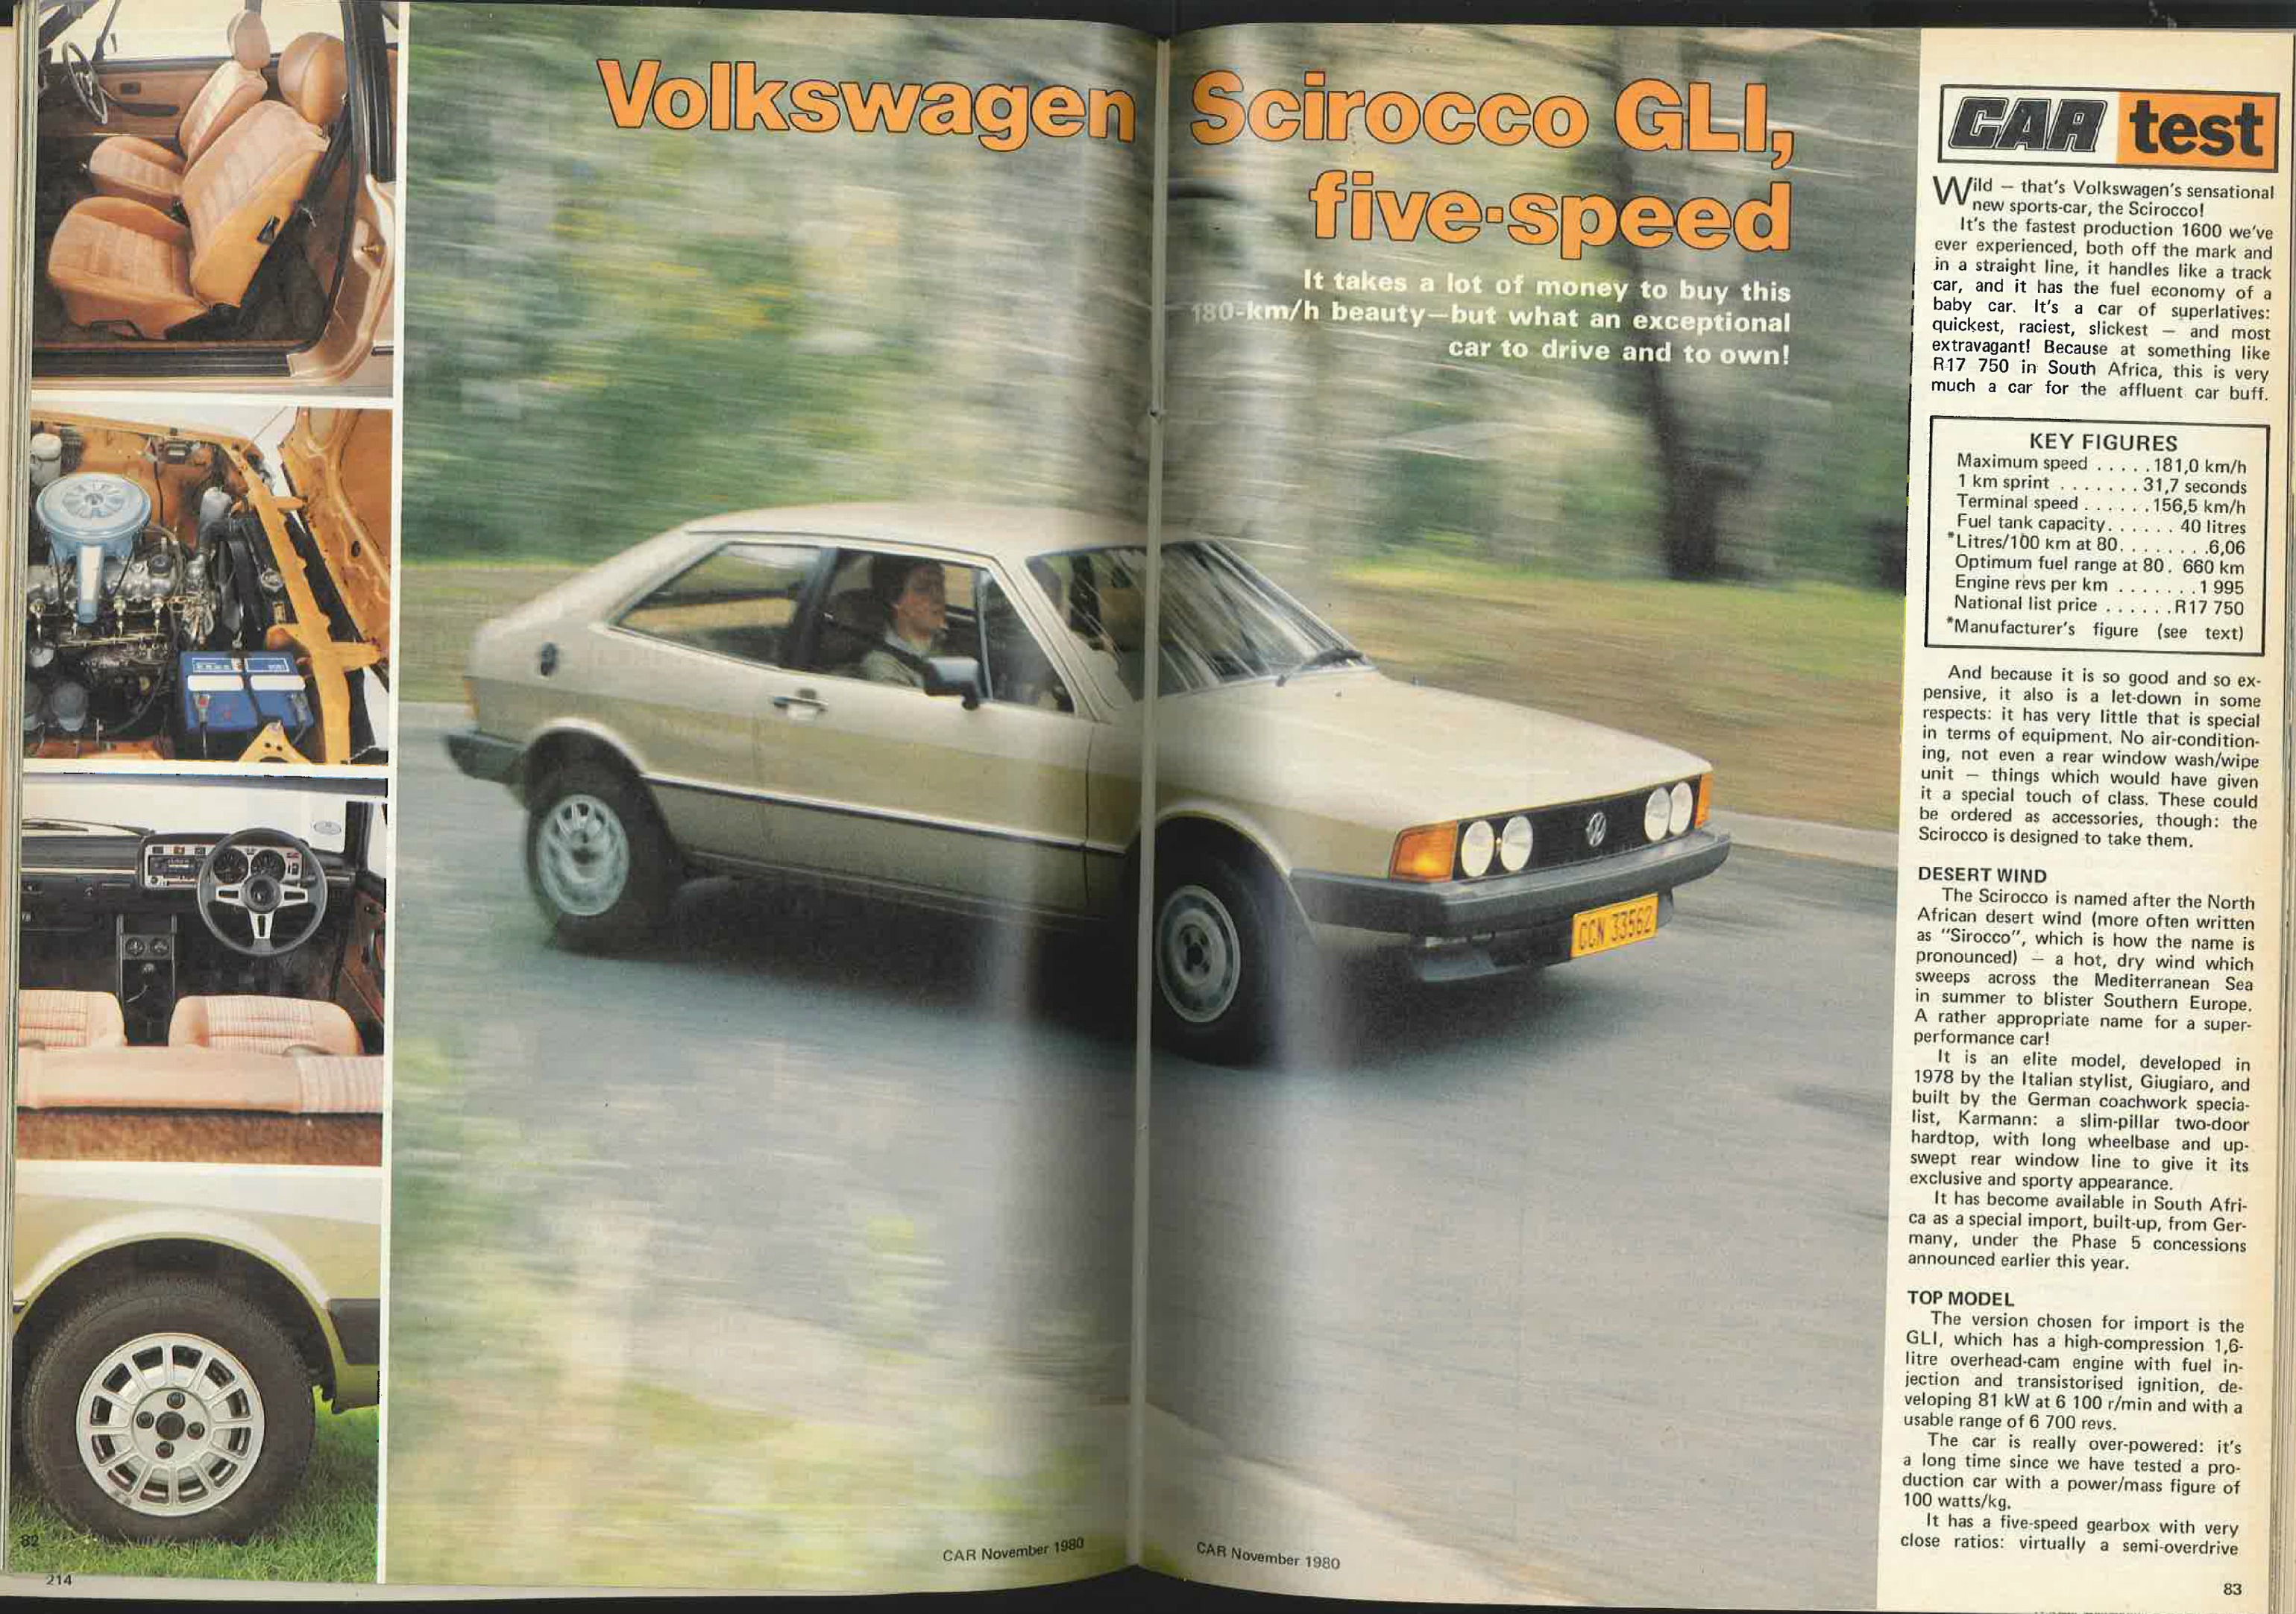 Of Torque At 5 000 R Min The Scirocco GLi Tested For November 1980 Issue Sprinted To 100 Km H In 98 Seconds And Managed A 181 Top Speed